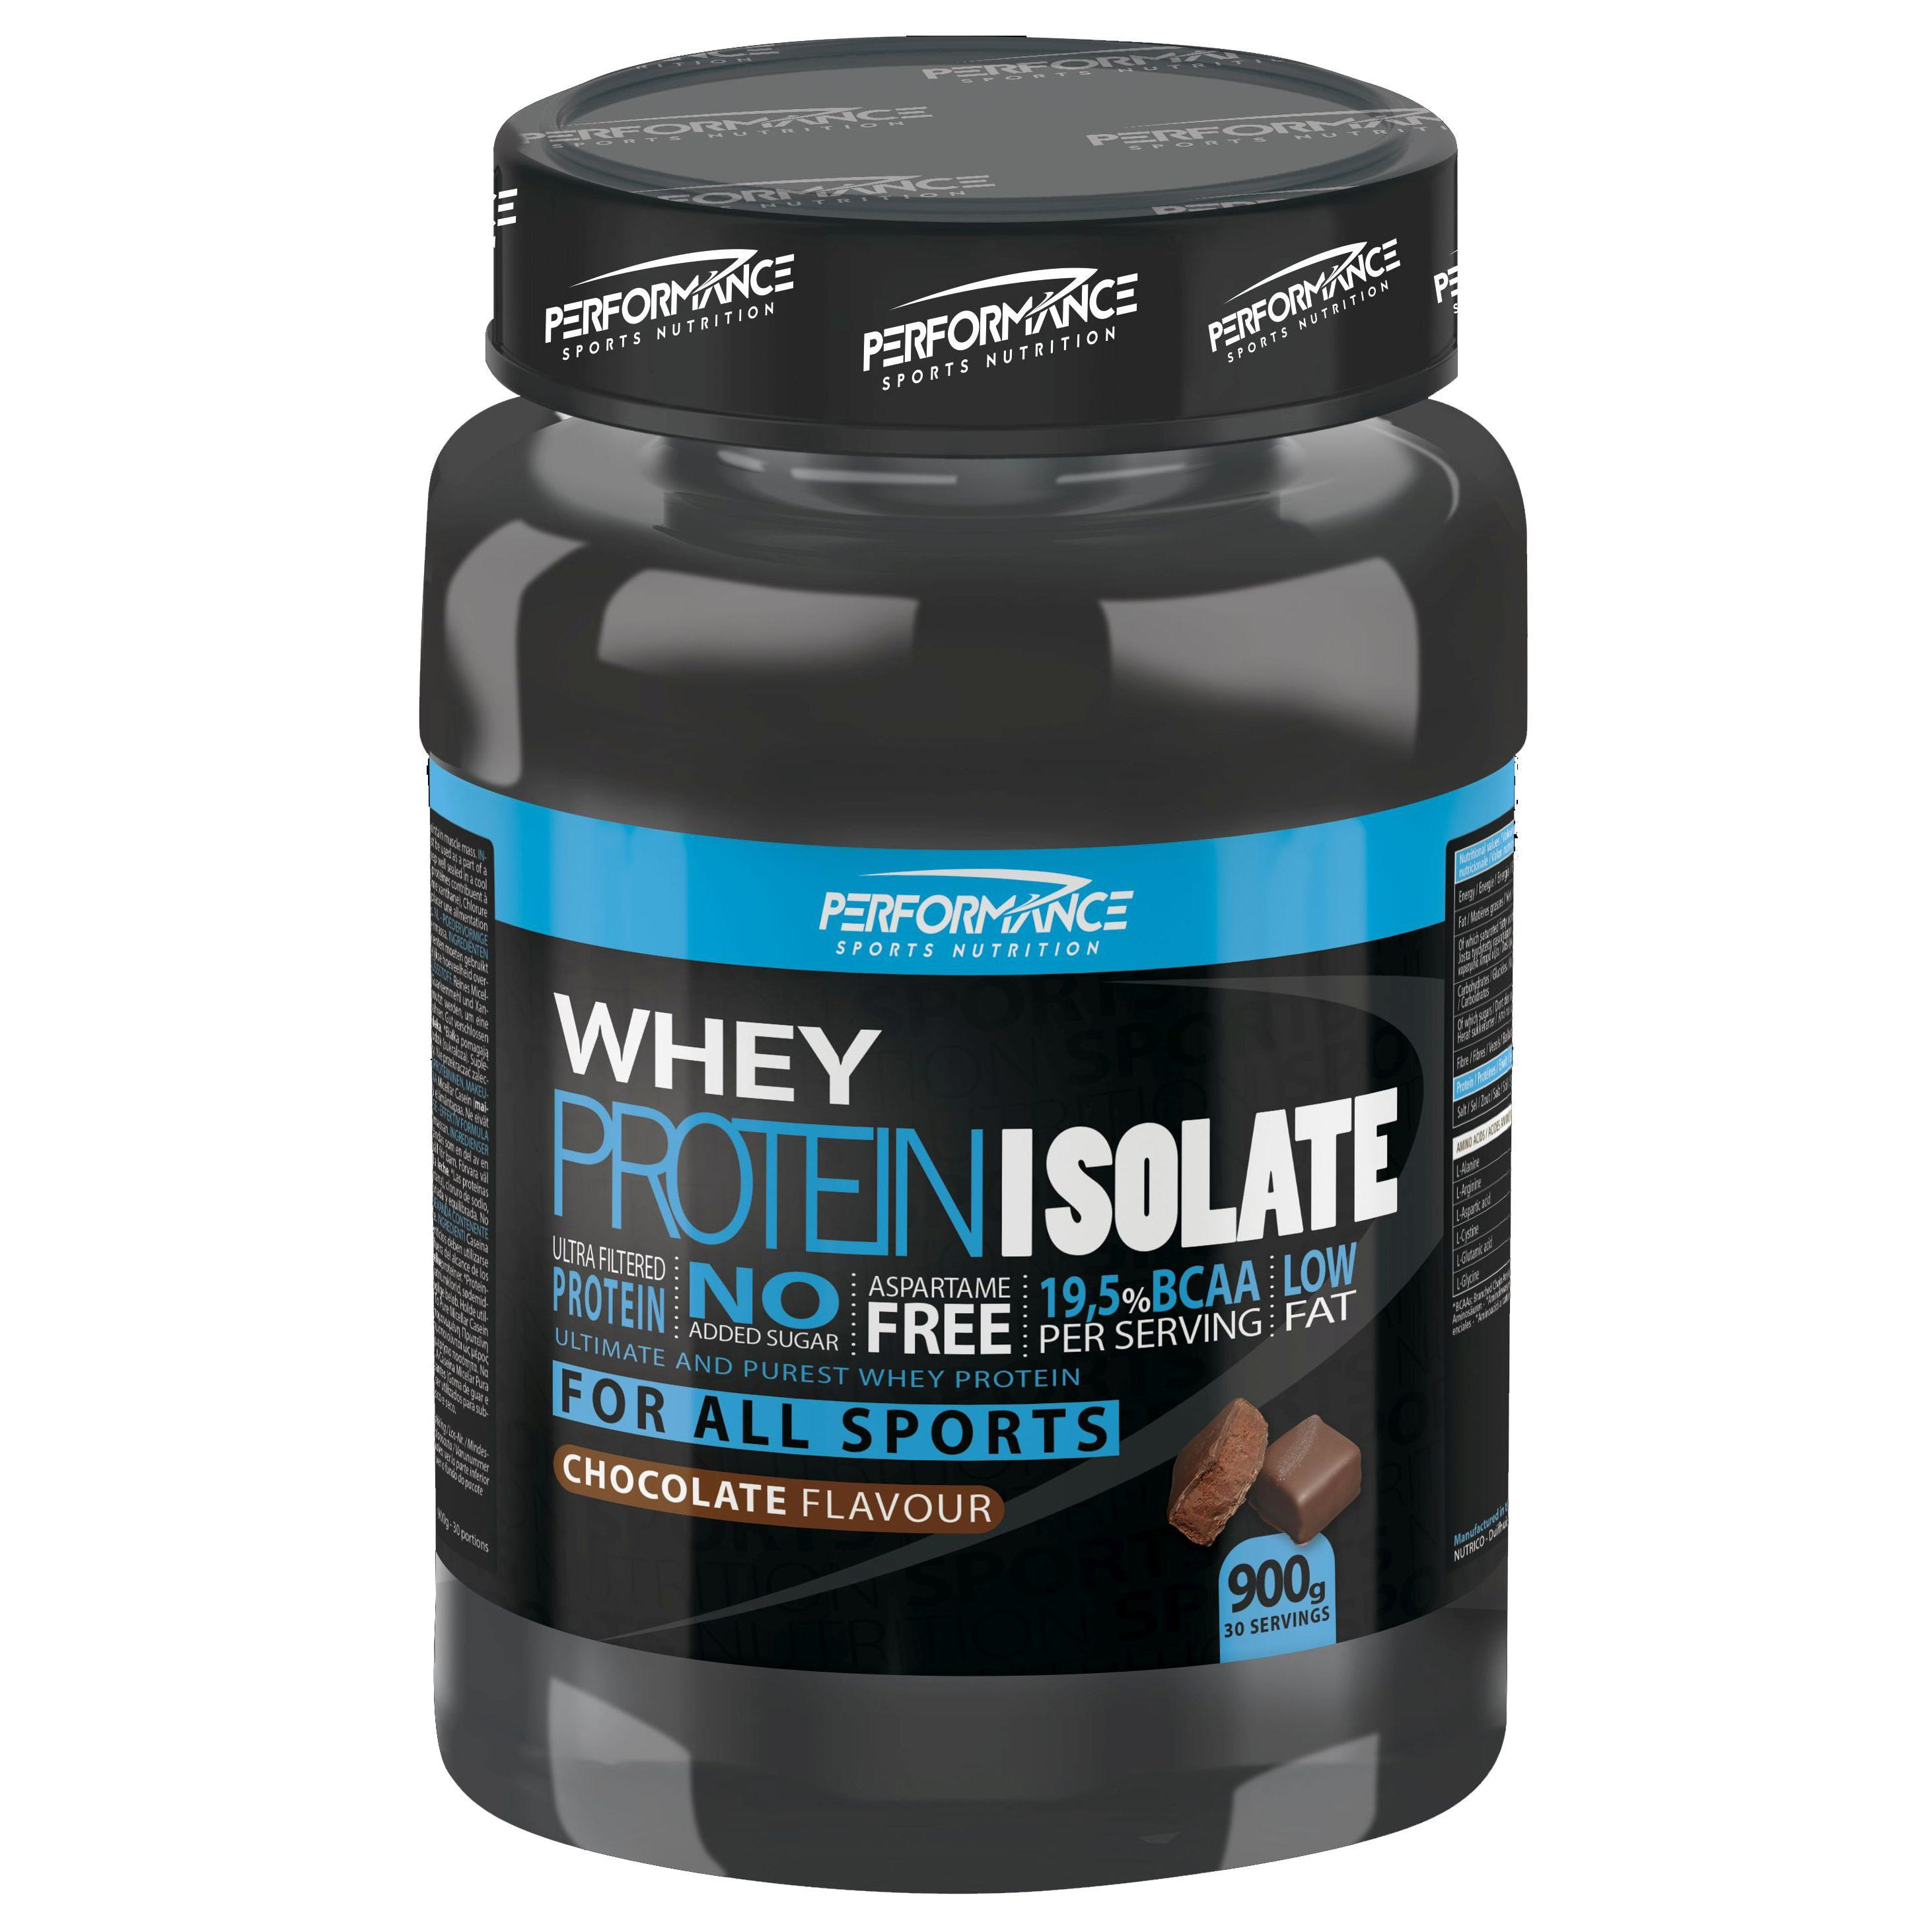 Performance Whey Protein Isolate chocolade